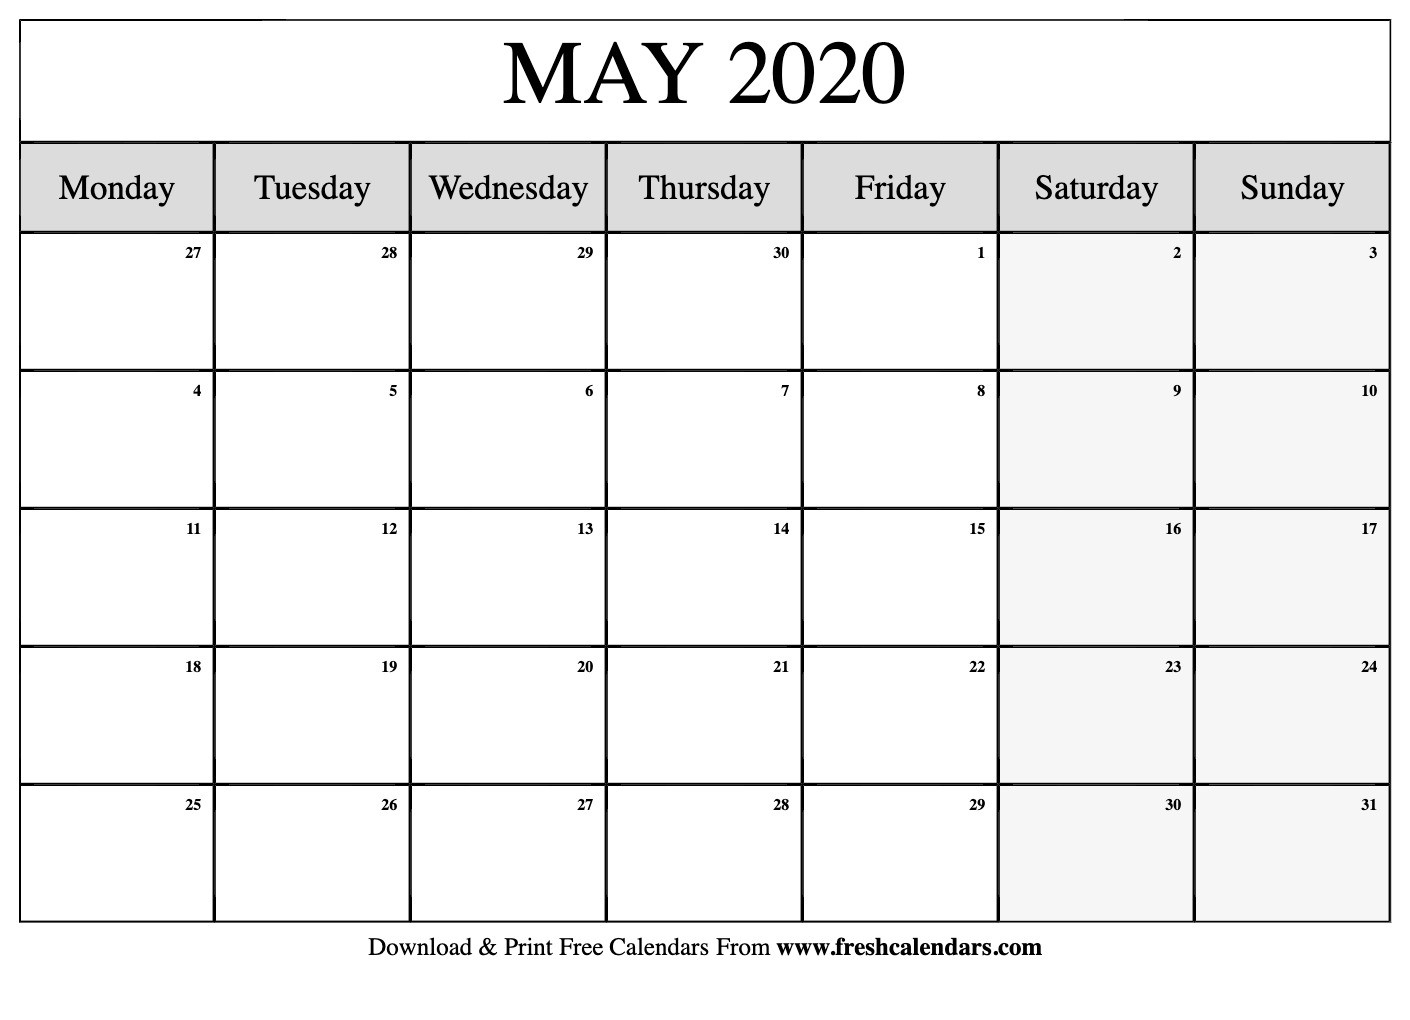 Free Printable May 2020 Calendar-Blank Monthly Planner Starts On Monday